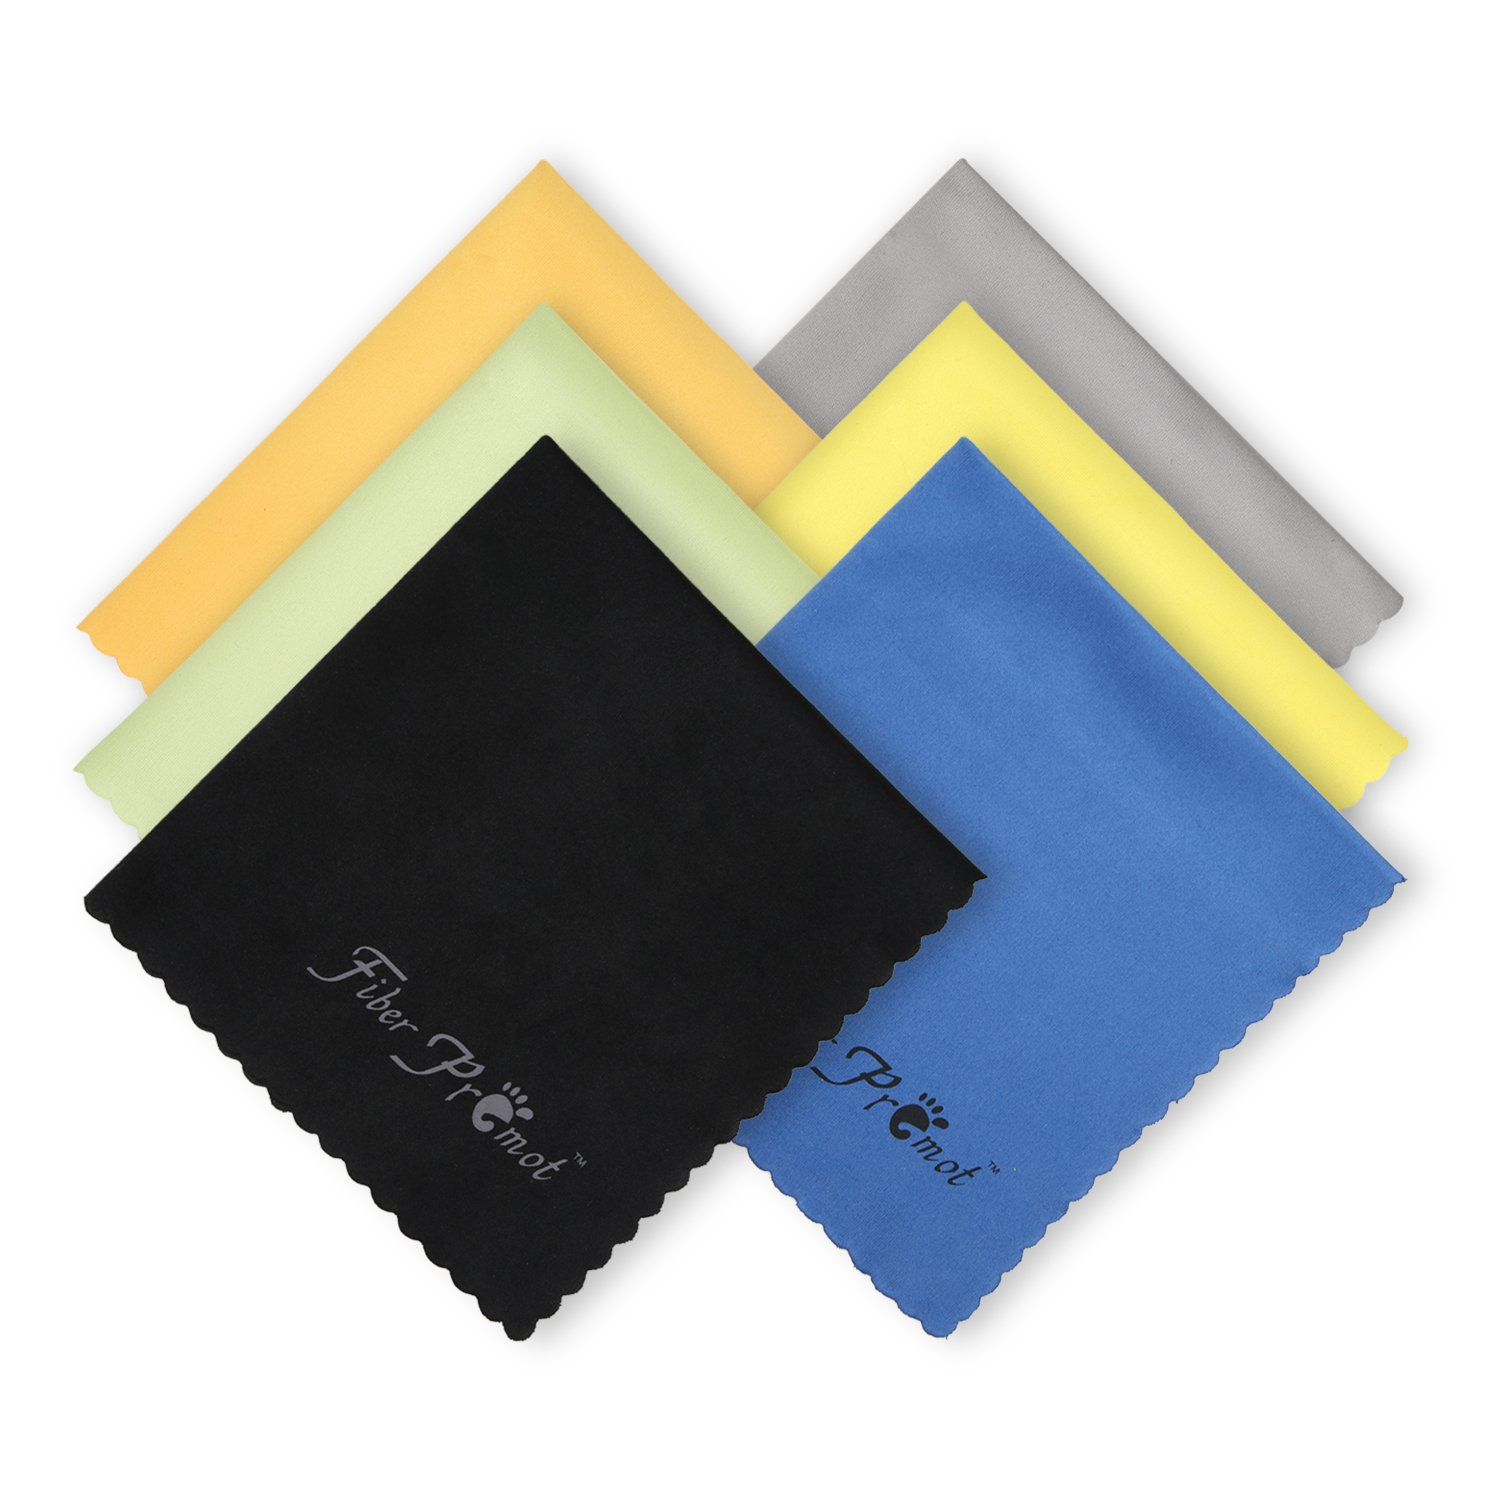 FIBER PROMOT 6 Pack Microfiber Cloths for Electronics,Phone,Screen,Camera,Glasses, Lens,Square,Glasses,Wipes,Optical,Computer,Laptop and TV Set Cleaning (6×7 inches) AQ160802